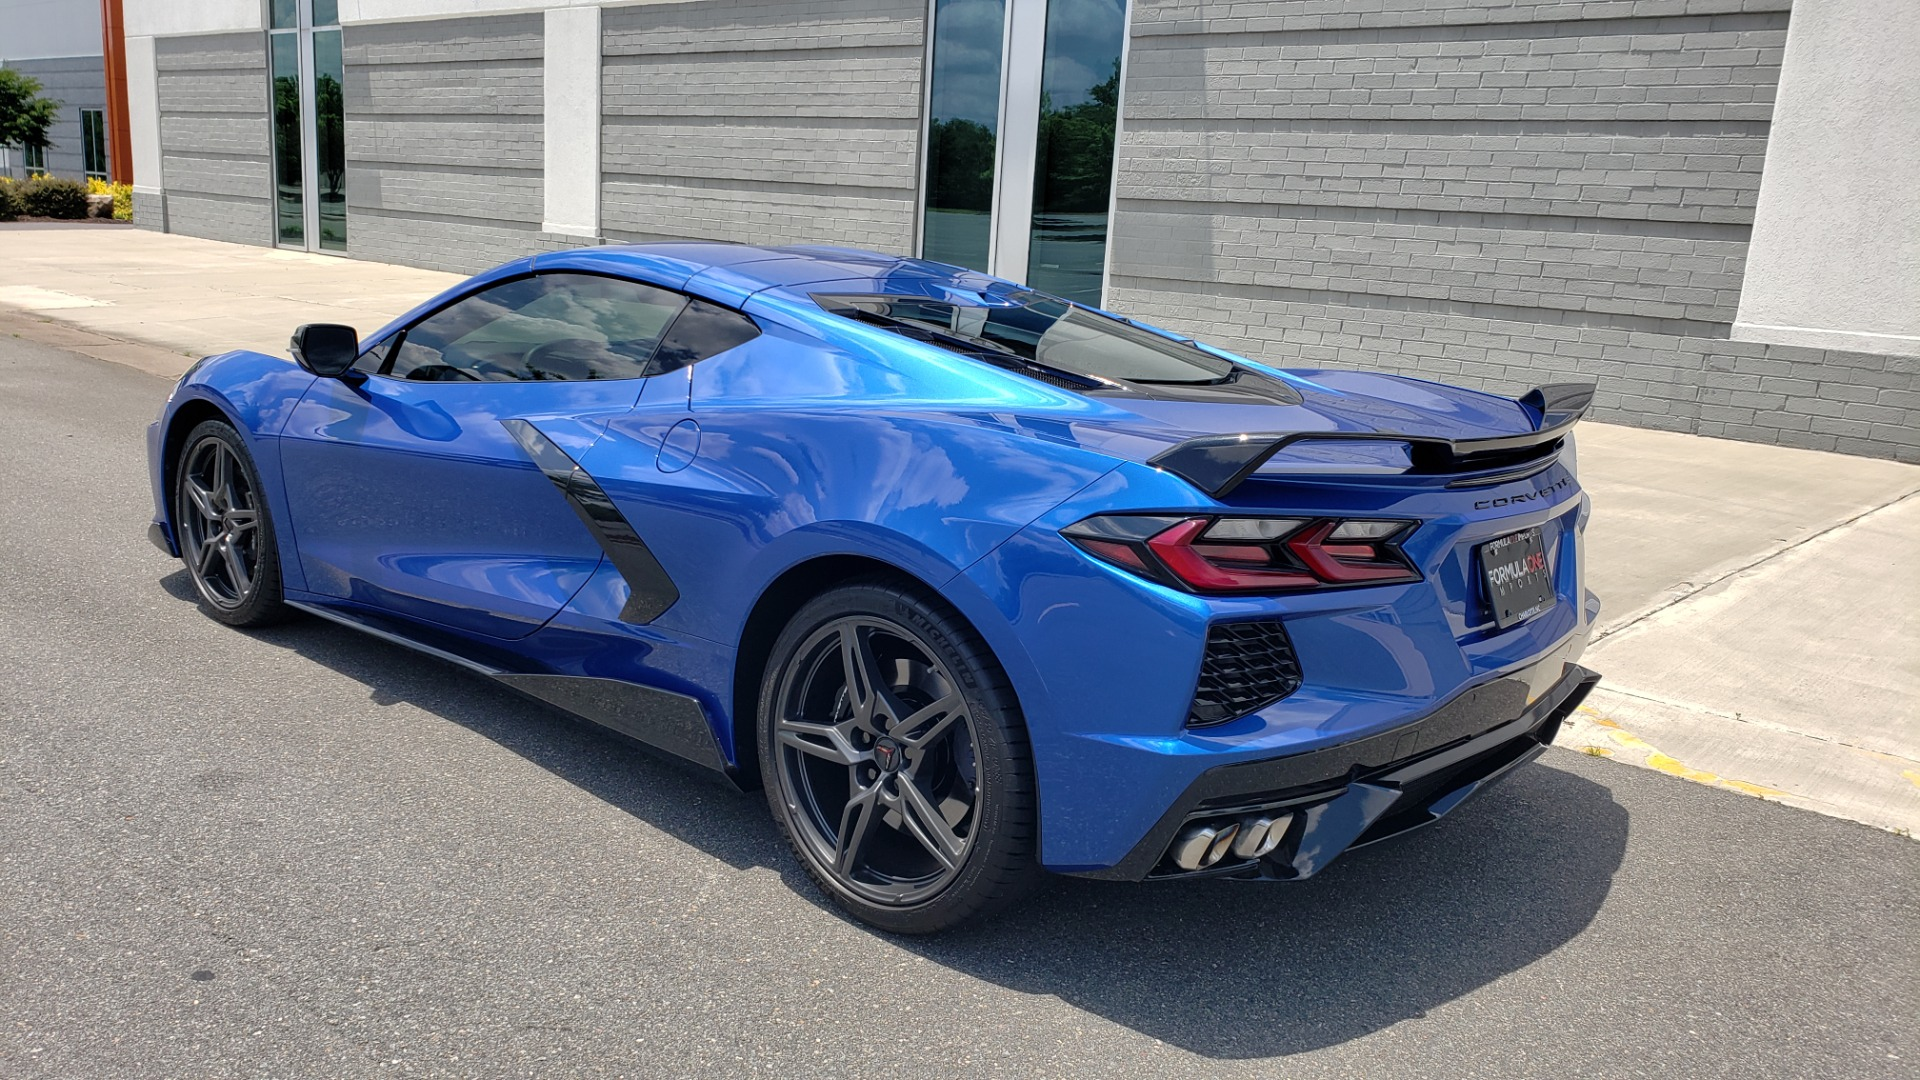 Used 2020 Chevrolet CORVETTE C8 STINGRAY COUPE 2LT / PERF & Z51 PKG / NAV / BOSE / 8-SPD AUTO / REARVIEW for sale Sold at Formula Imports in Charlotte NC 28227 6